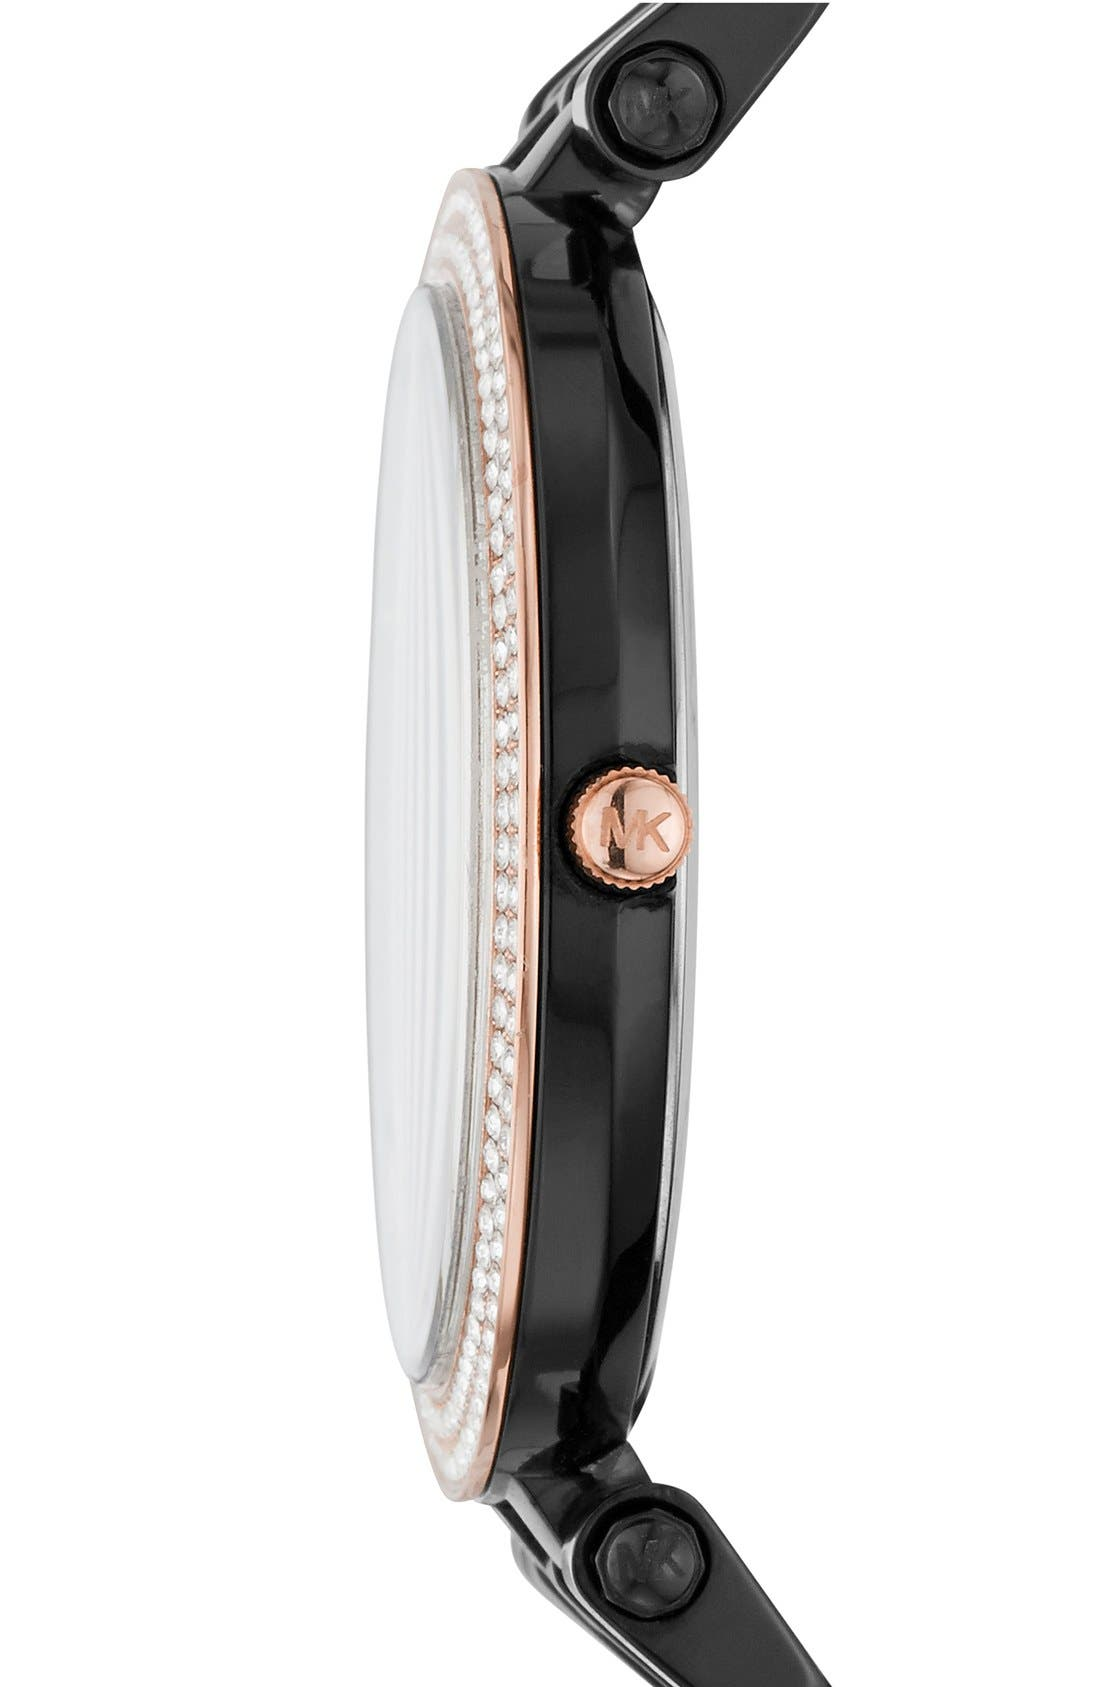 MICHAEL KORS, 'Darci' Round Bracelet Watch, 39mm, Alternate thumbnail 2, color, 001